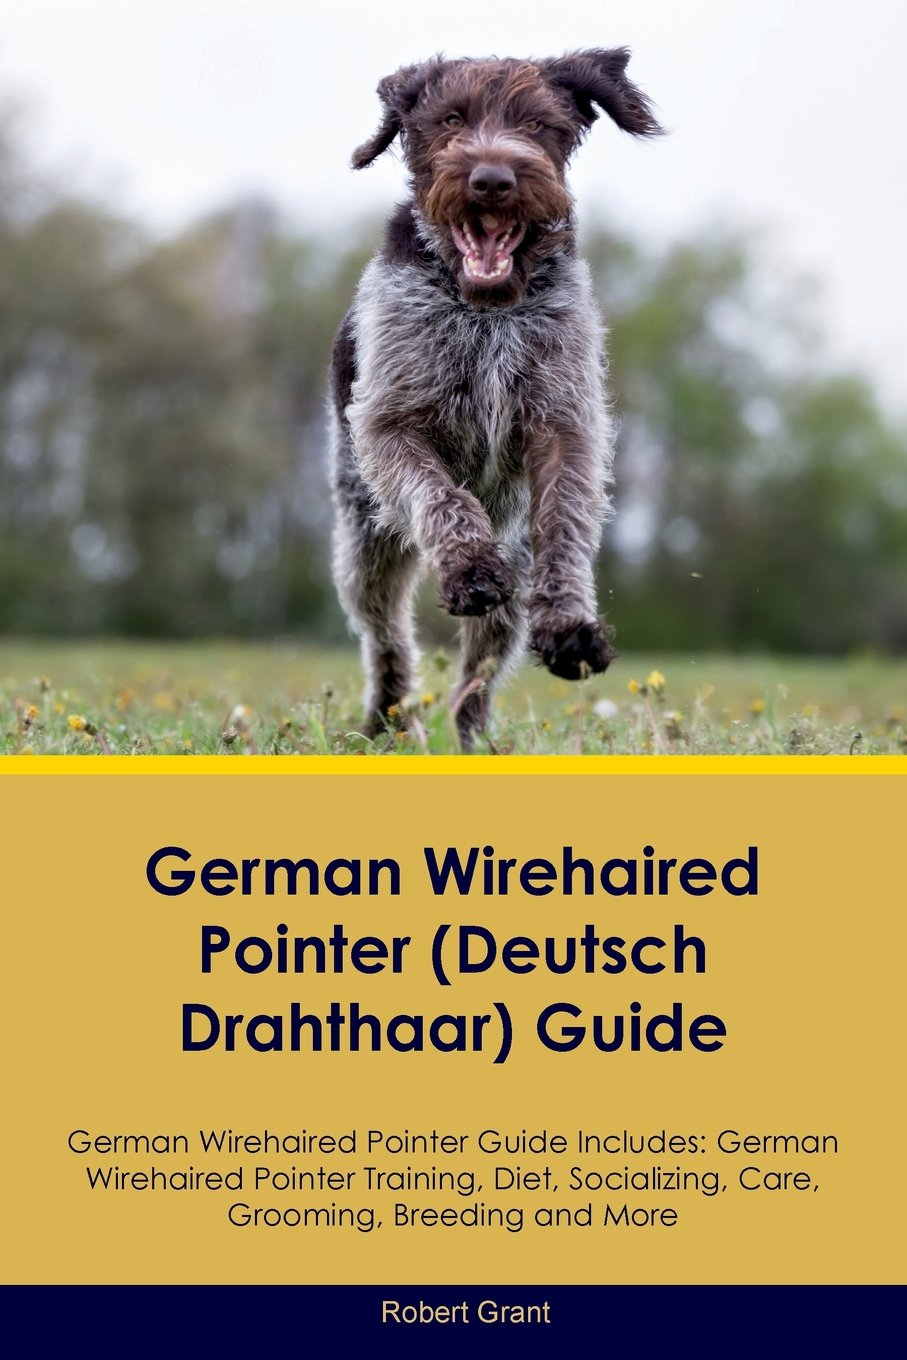 German Wirehaired Pointer (Deutsch Drahthaar) Guide German Wirehaired Pointer Guide Includes: German Wirehaired Pointer Training, Diet, Socializing, Care, Grooming, Breeding and More